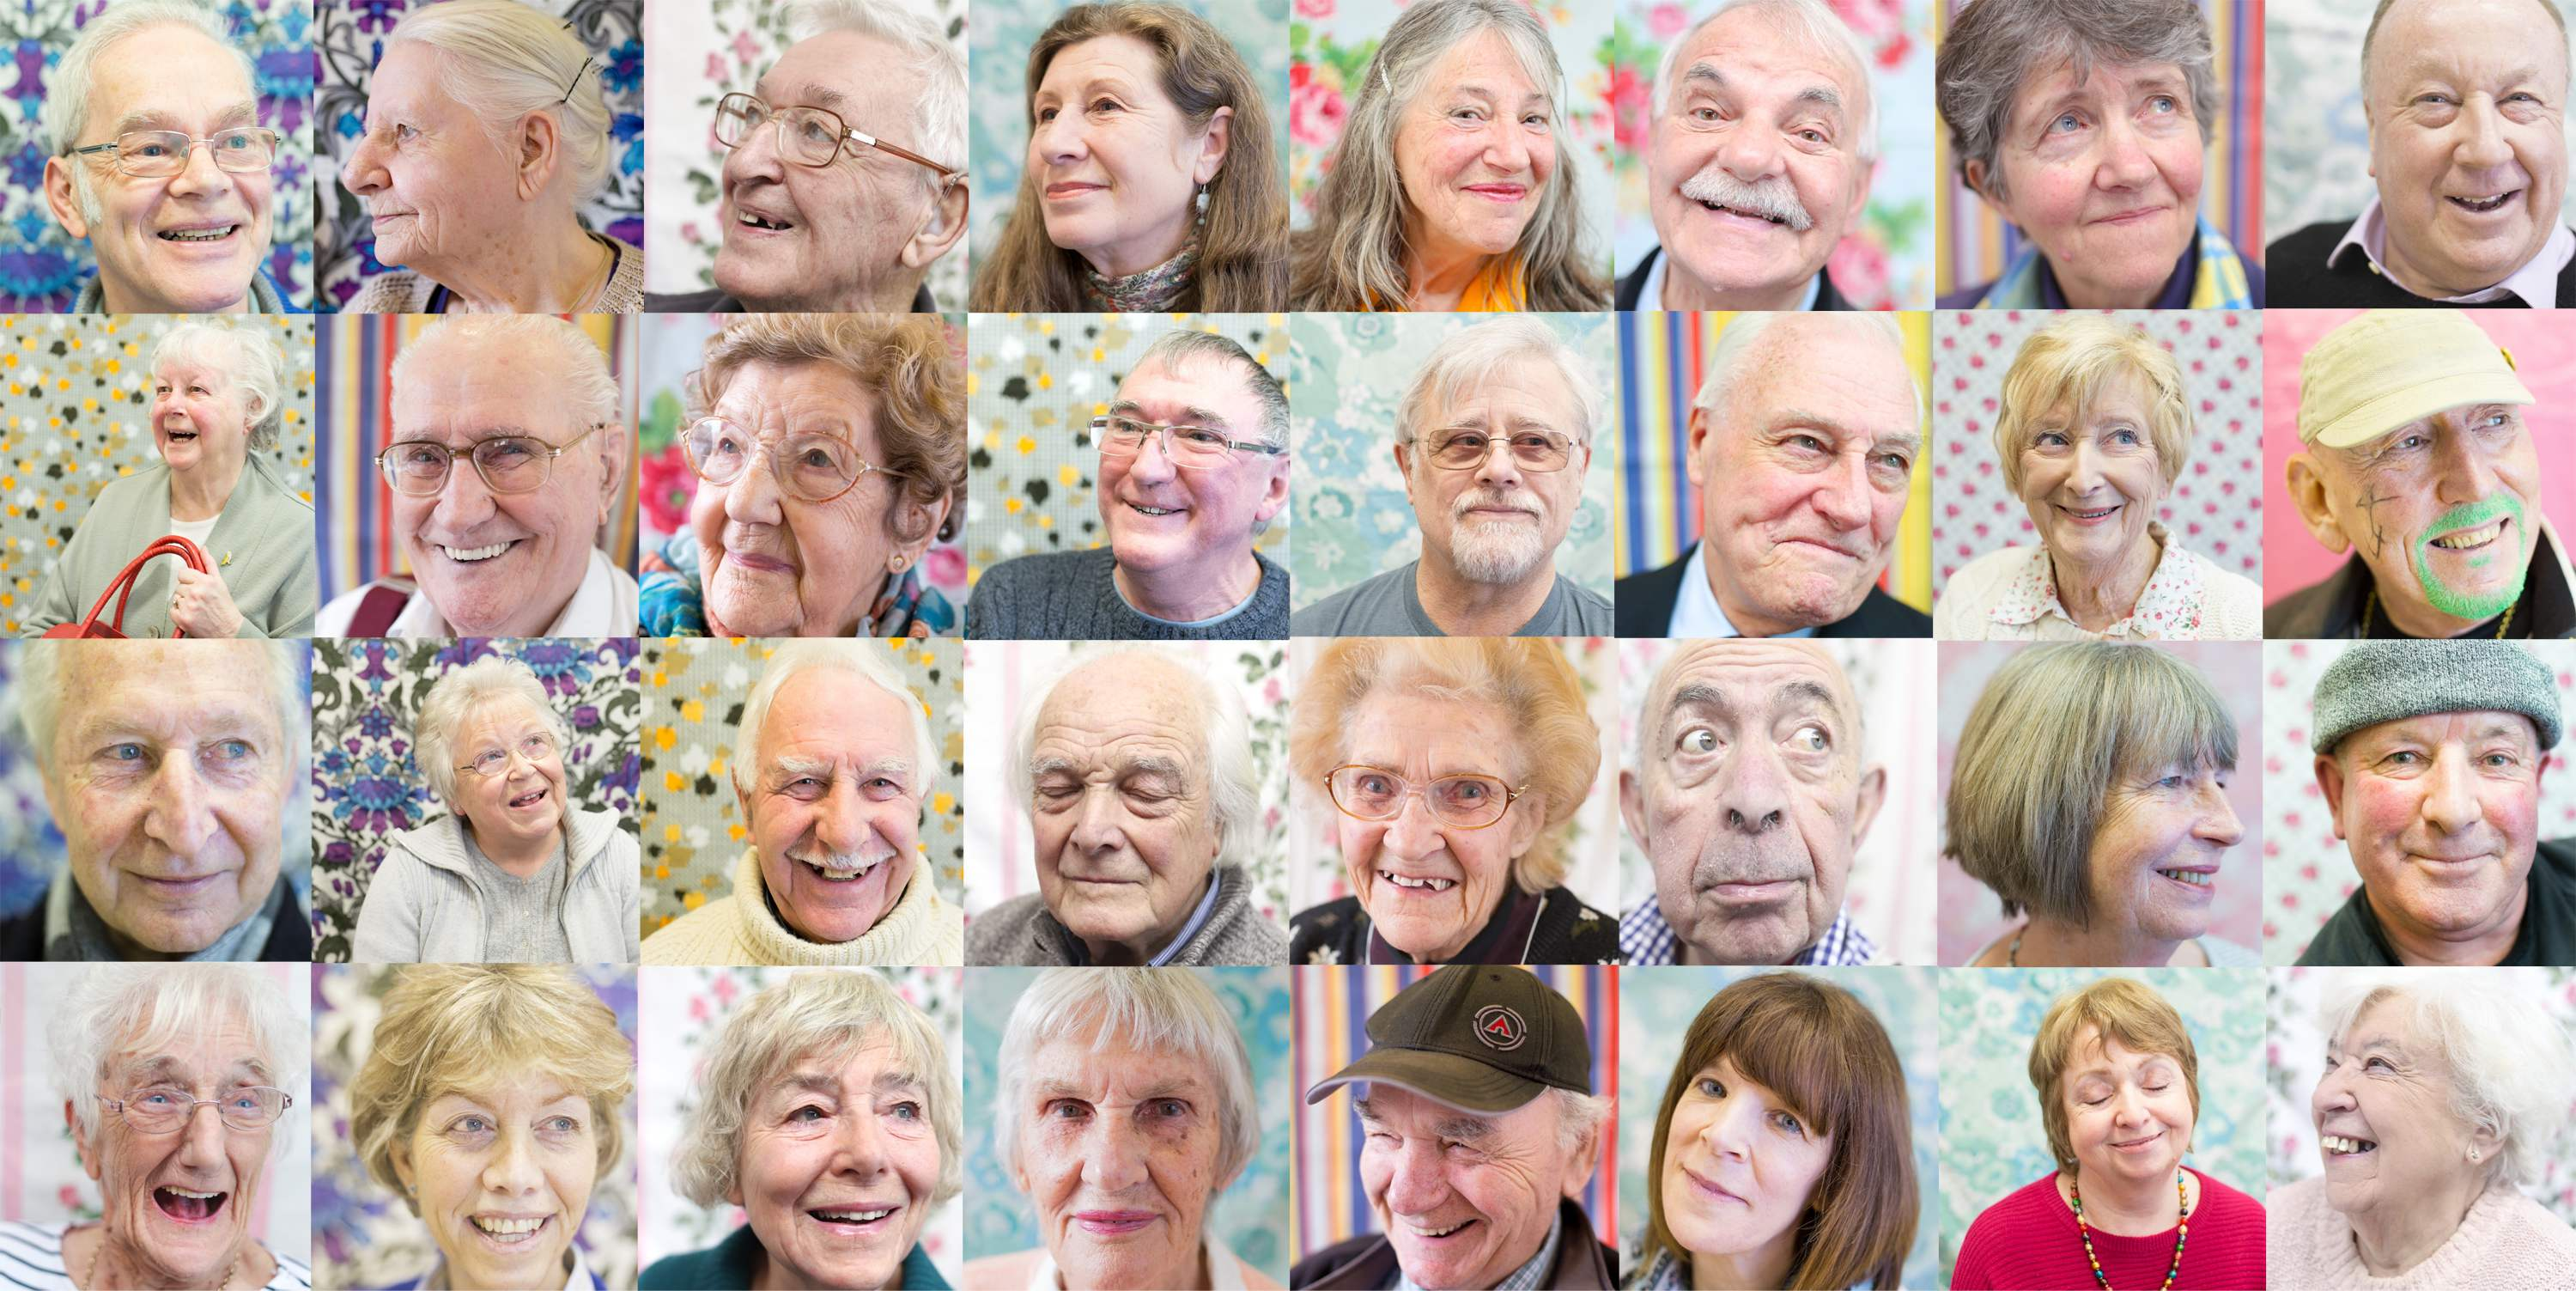 composite image of participants, photos by Elizabeth Doak